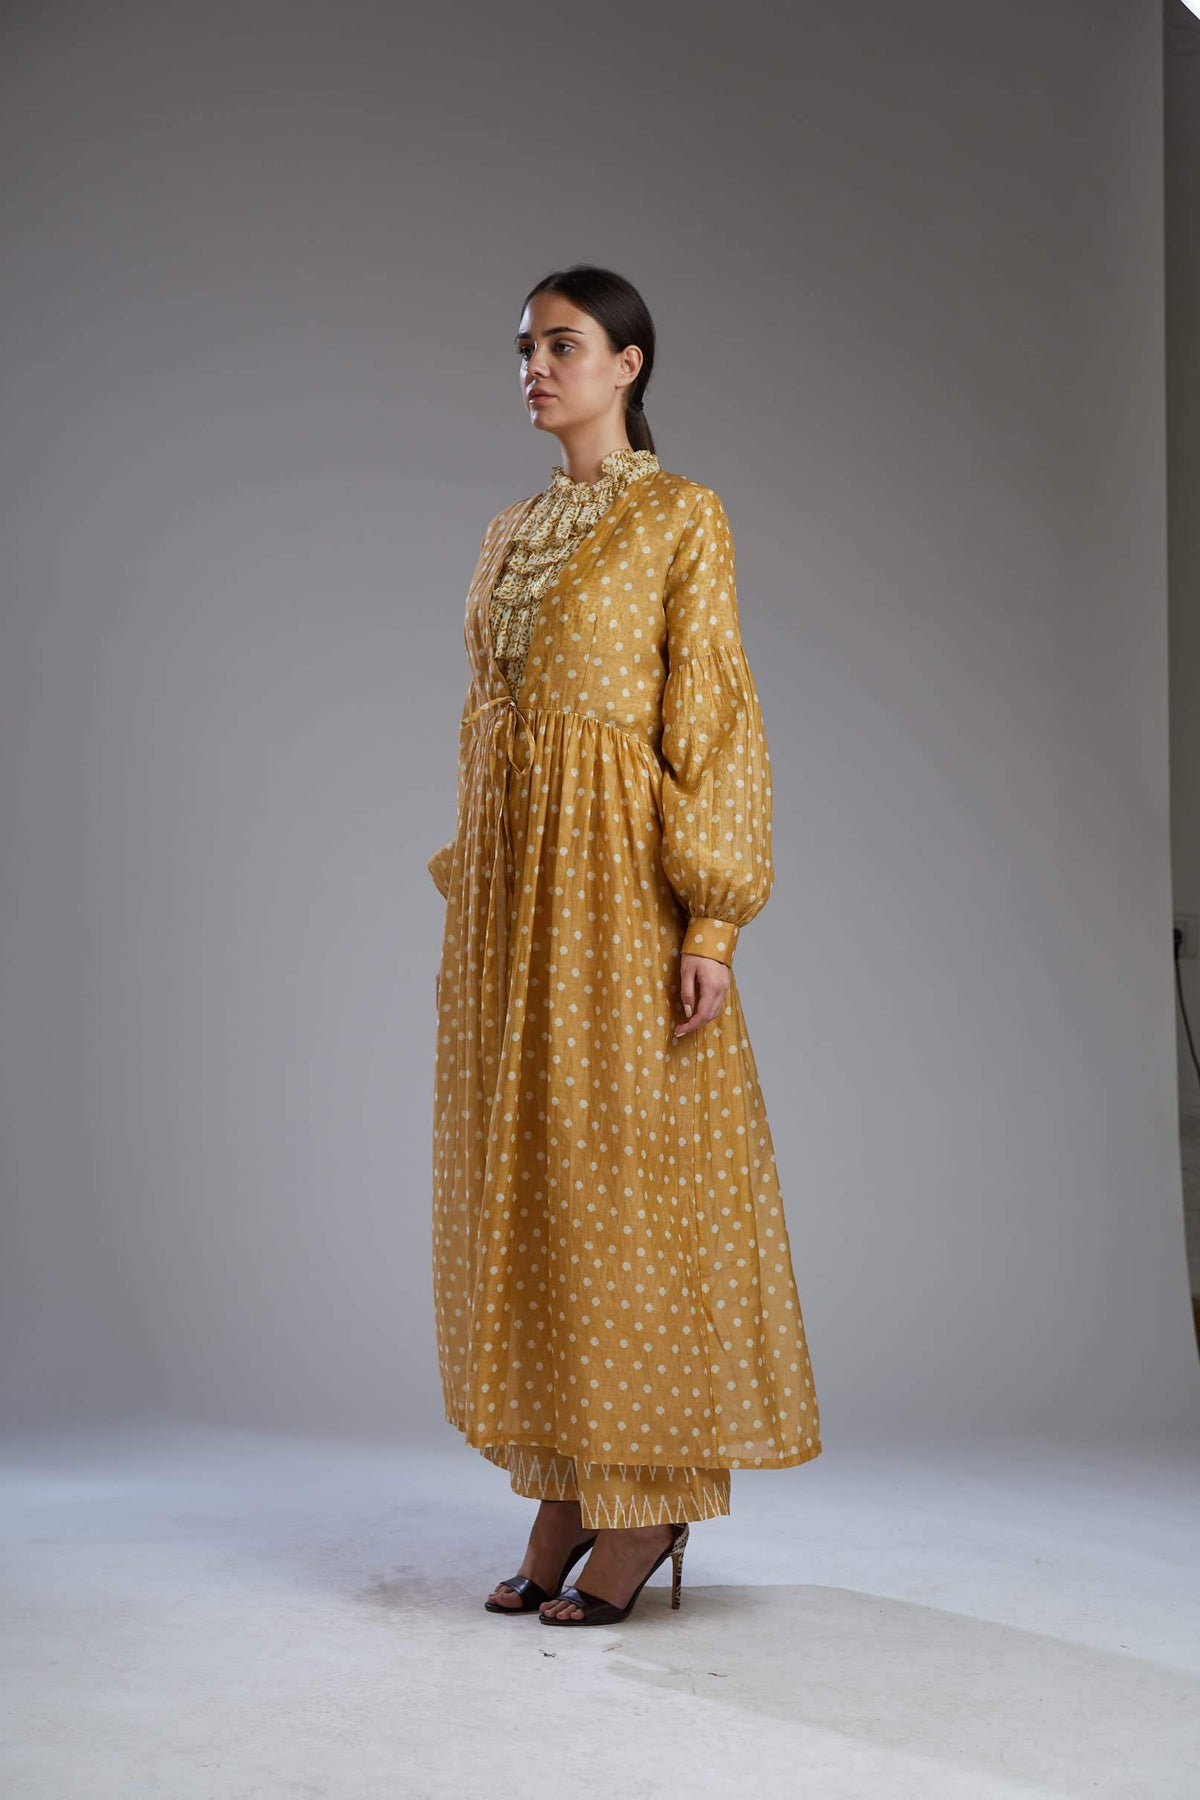 Koai Capes Yellow with white polka dots cape